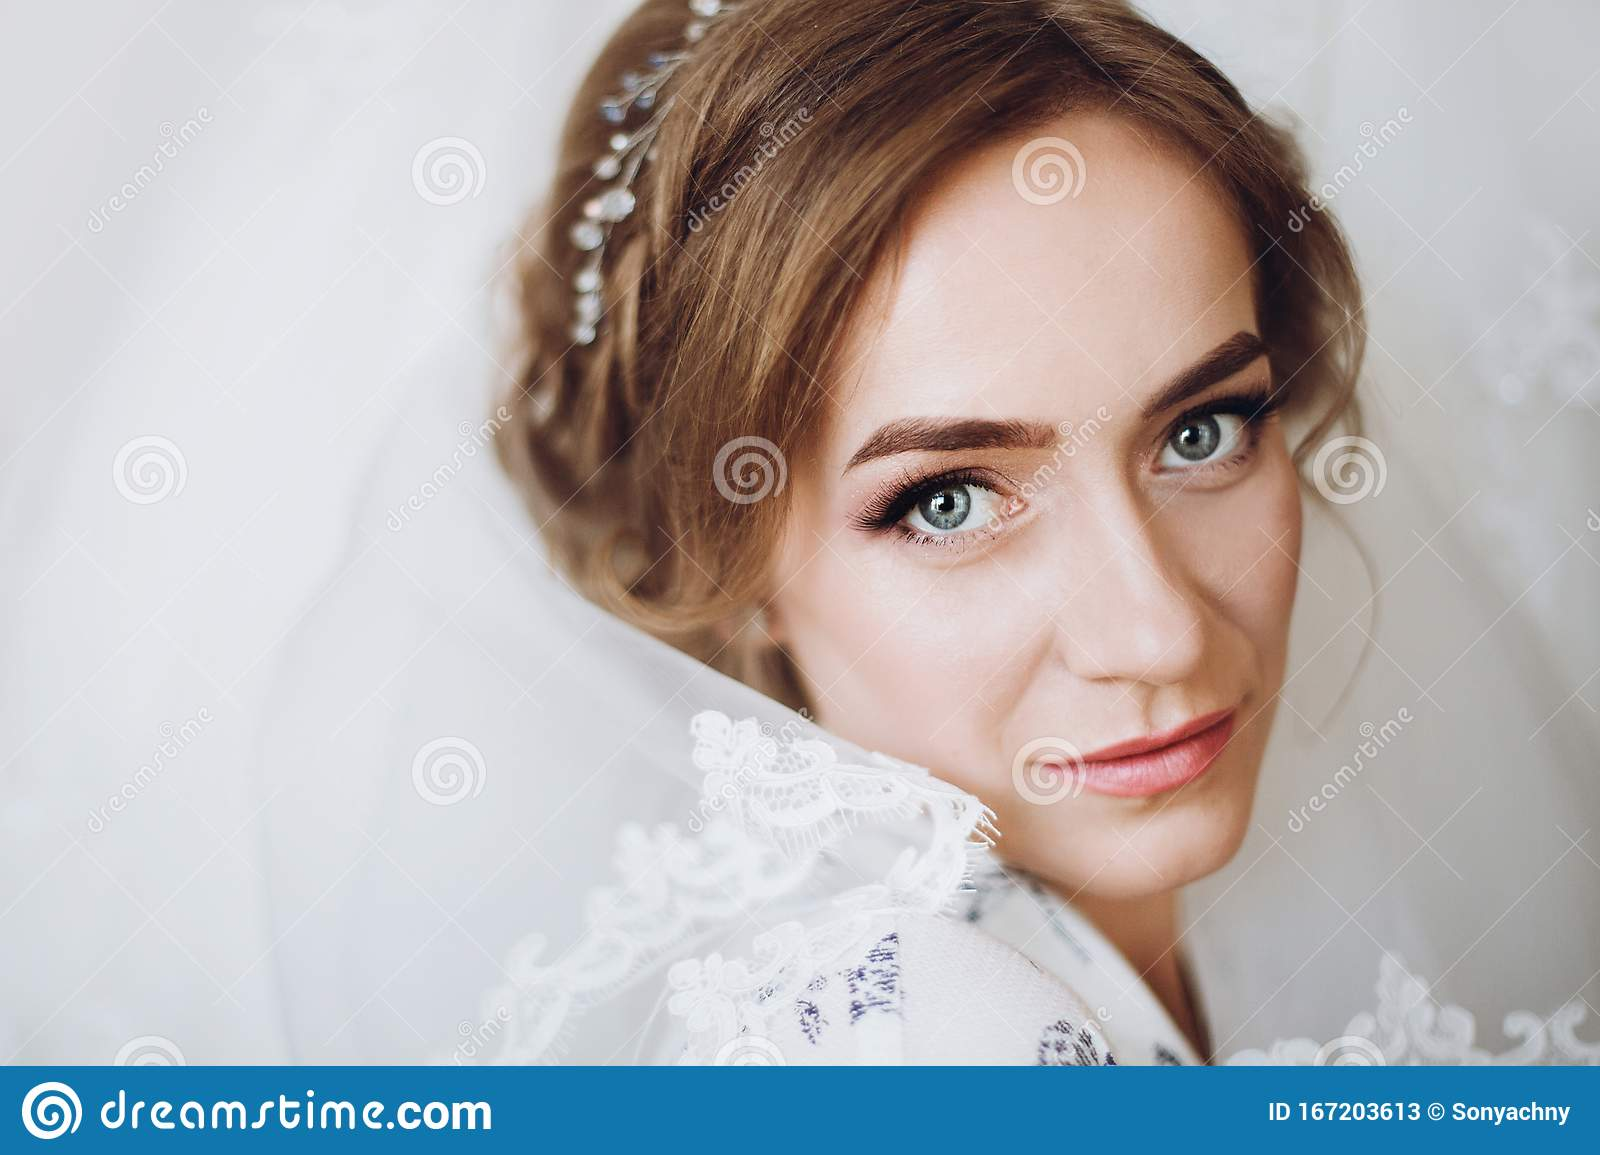 Face Closeup Of Gorgeous Bride With Makeup And Veil Beautiful Bride Portrait The Morning Before The Wedding Stock Image Image Of Beautiful Caucasian 167203613